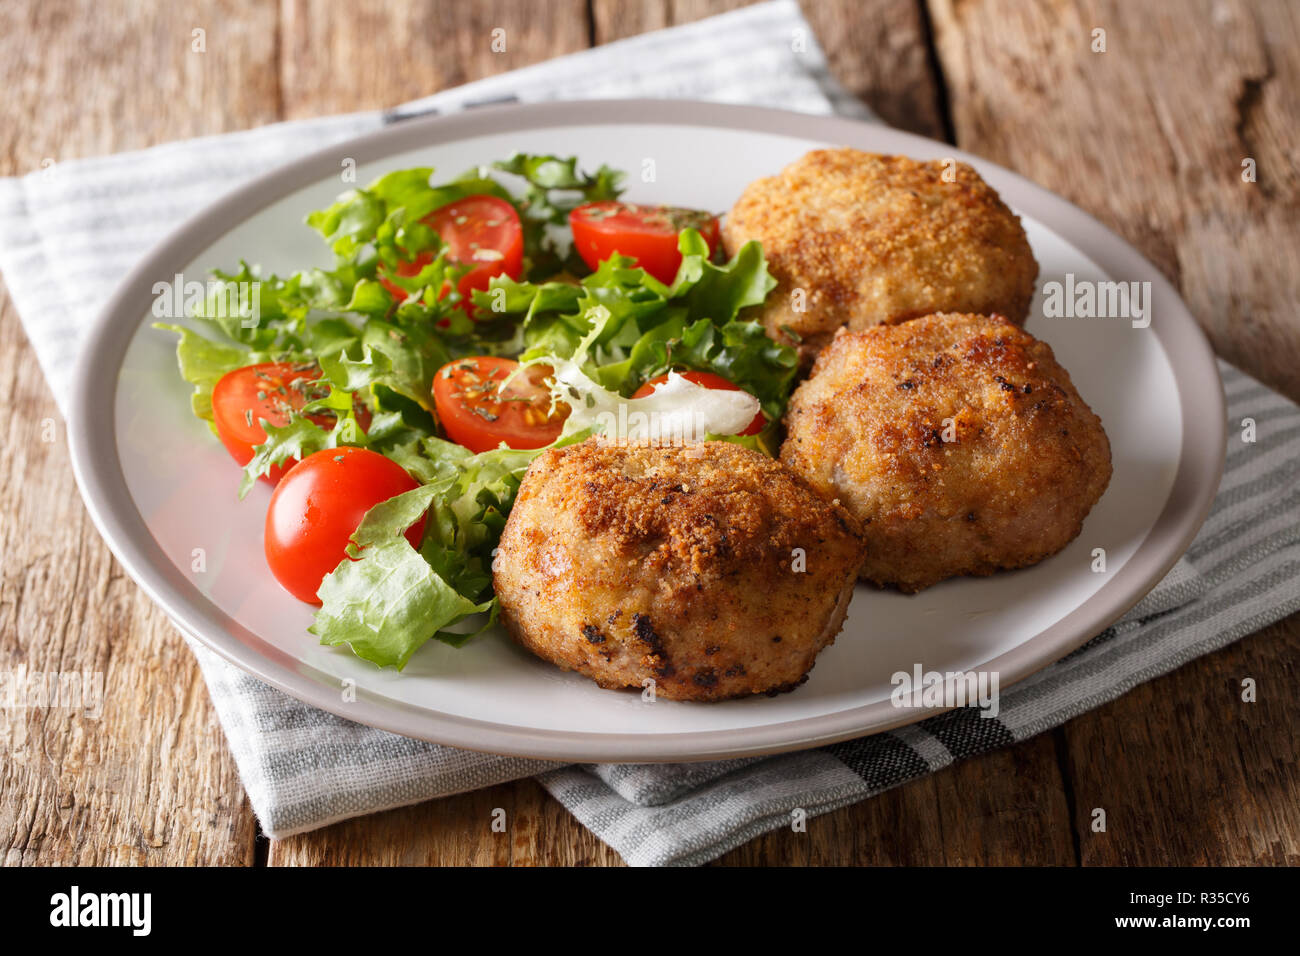 KarbonaderBreaded Pork PattyRecipe with fresh vegetable salad close-up on a plate on the table. Horizontal - Stock Image